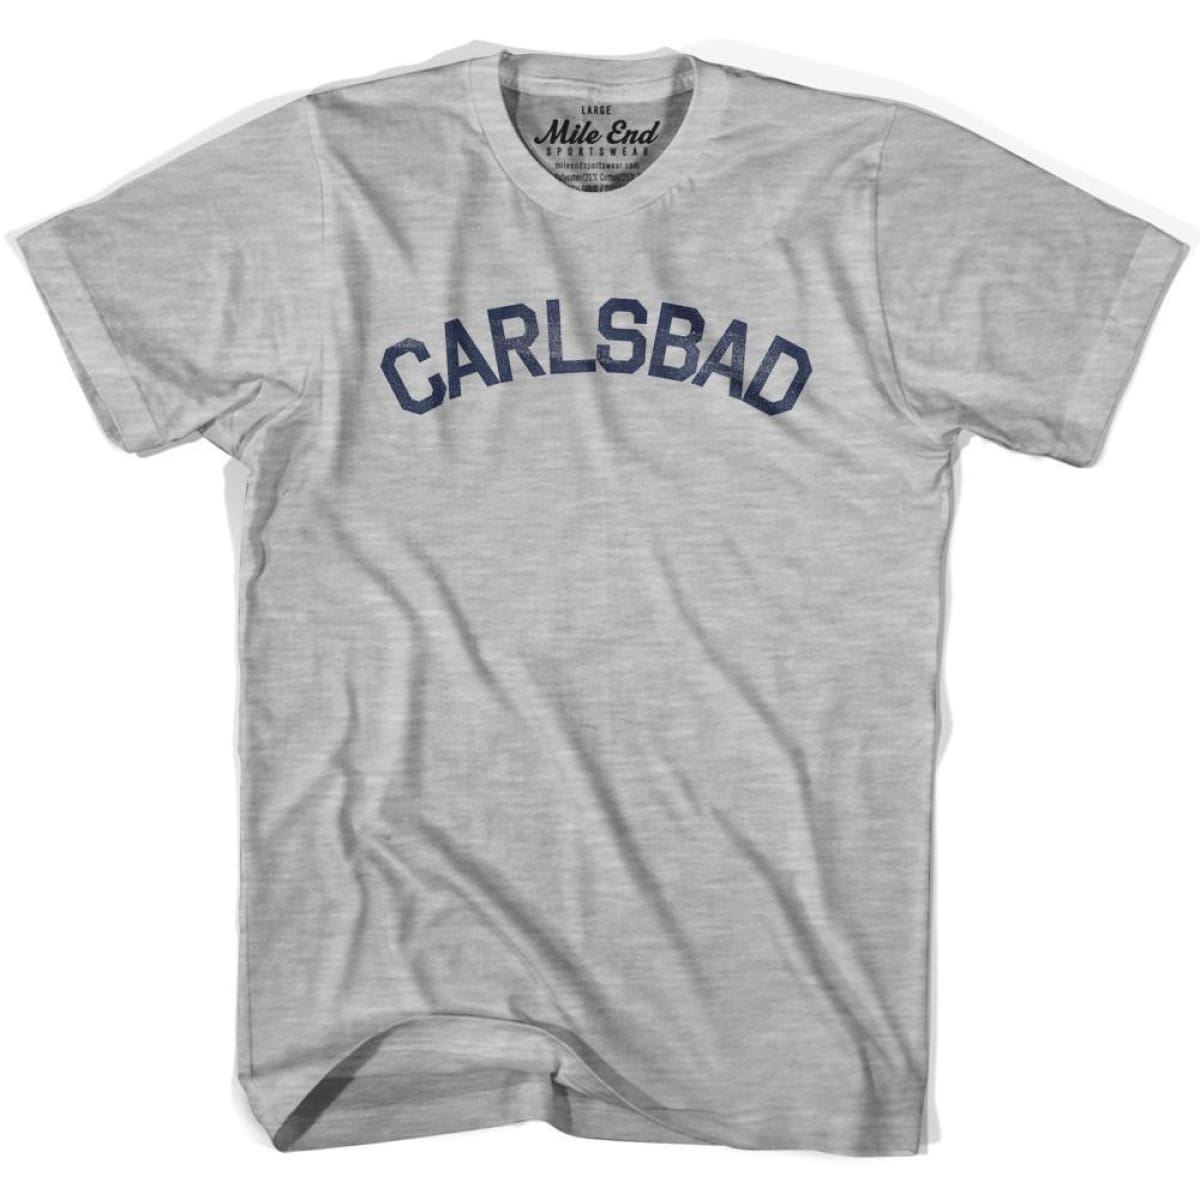 Carlsbad City Vintage T-shirt - Grey Heather / Youth X-Small - Mile End City